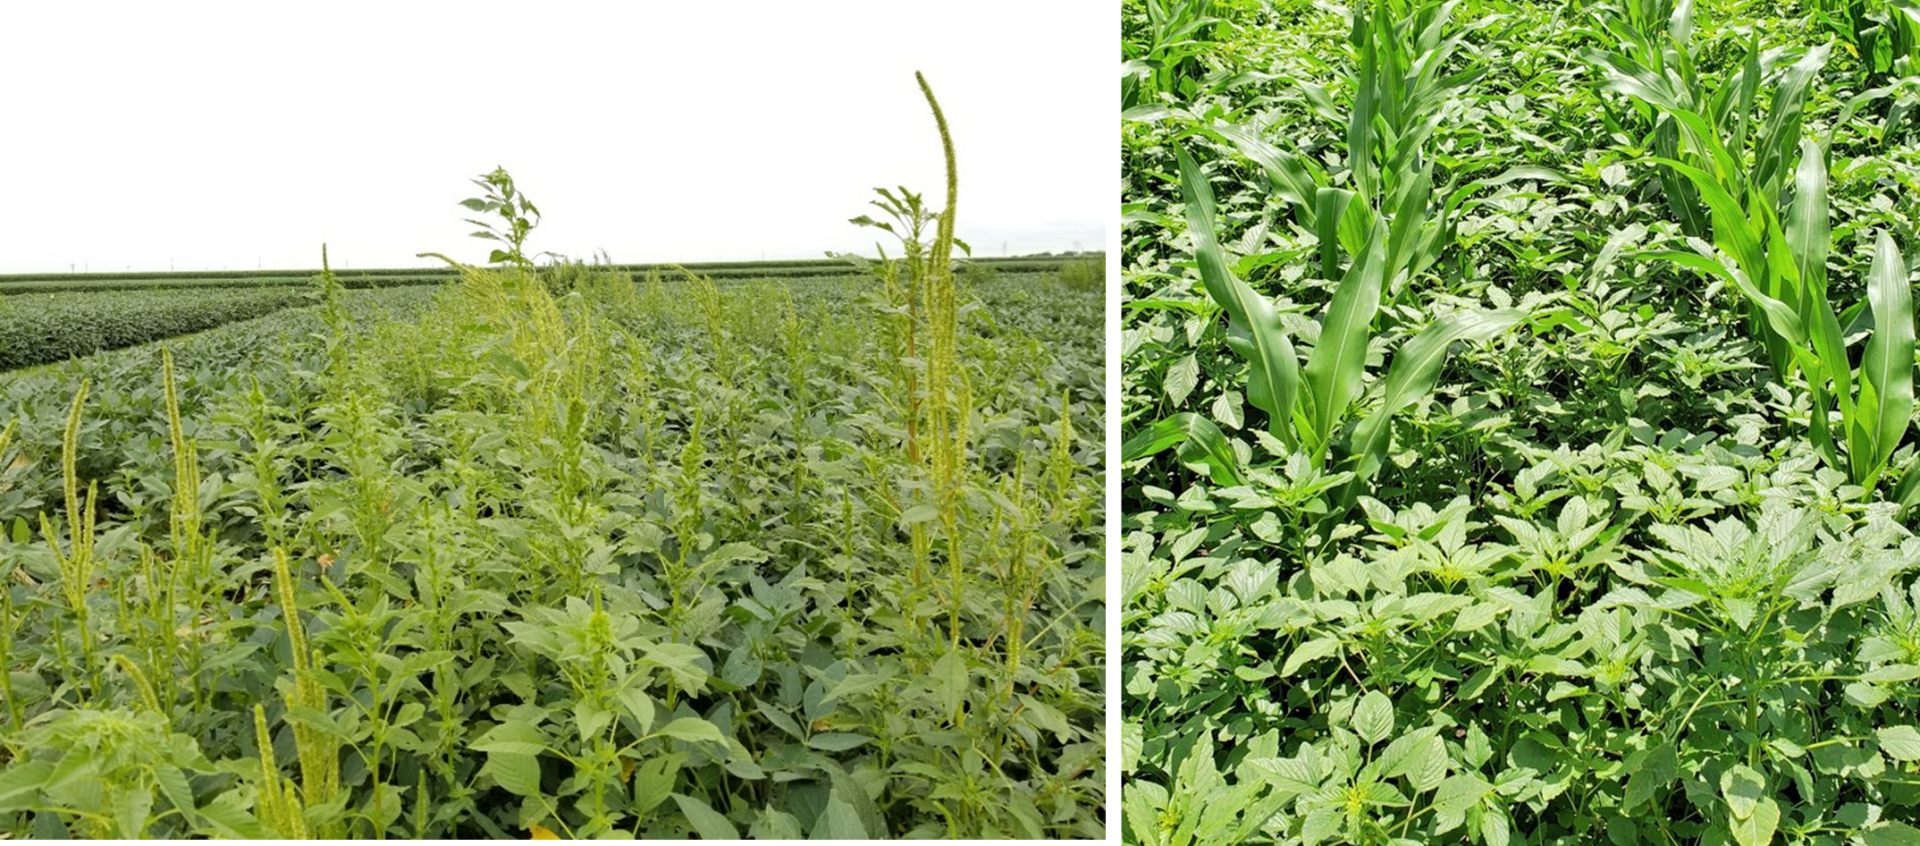 Glyphosate-resistant Palmer amaranth in soybean field (left) in south central Nebraska and atrazine/ALS inhibitors/ glyphosate-resistant Palmer amaranth in corn field (right) near Carleton, NE